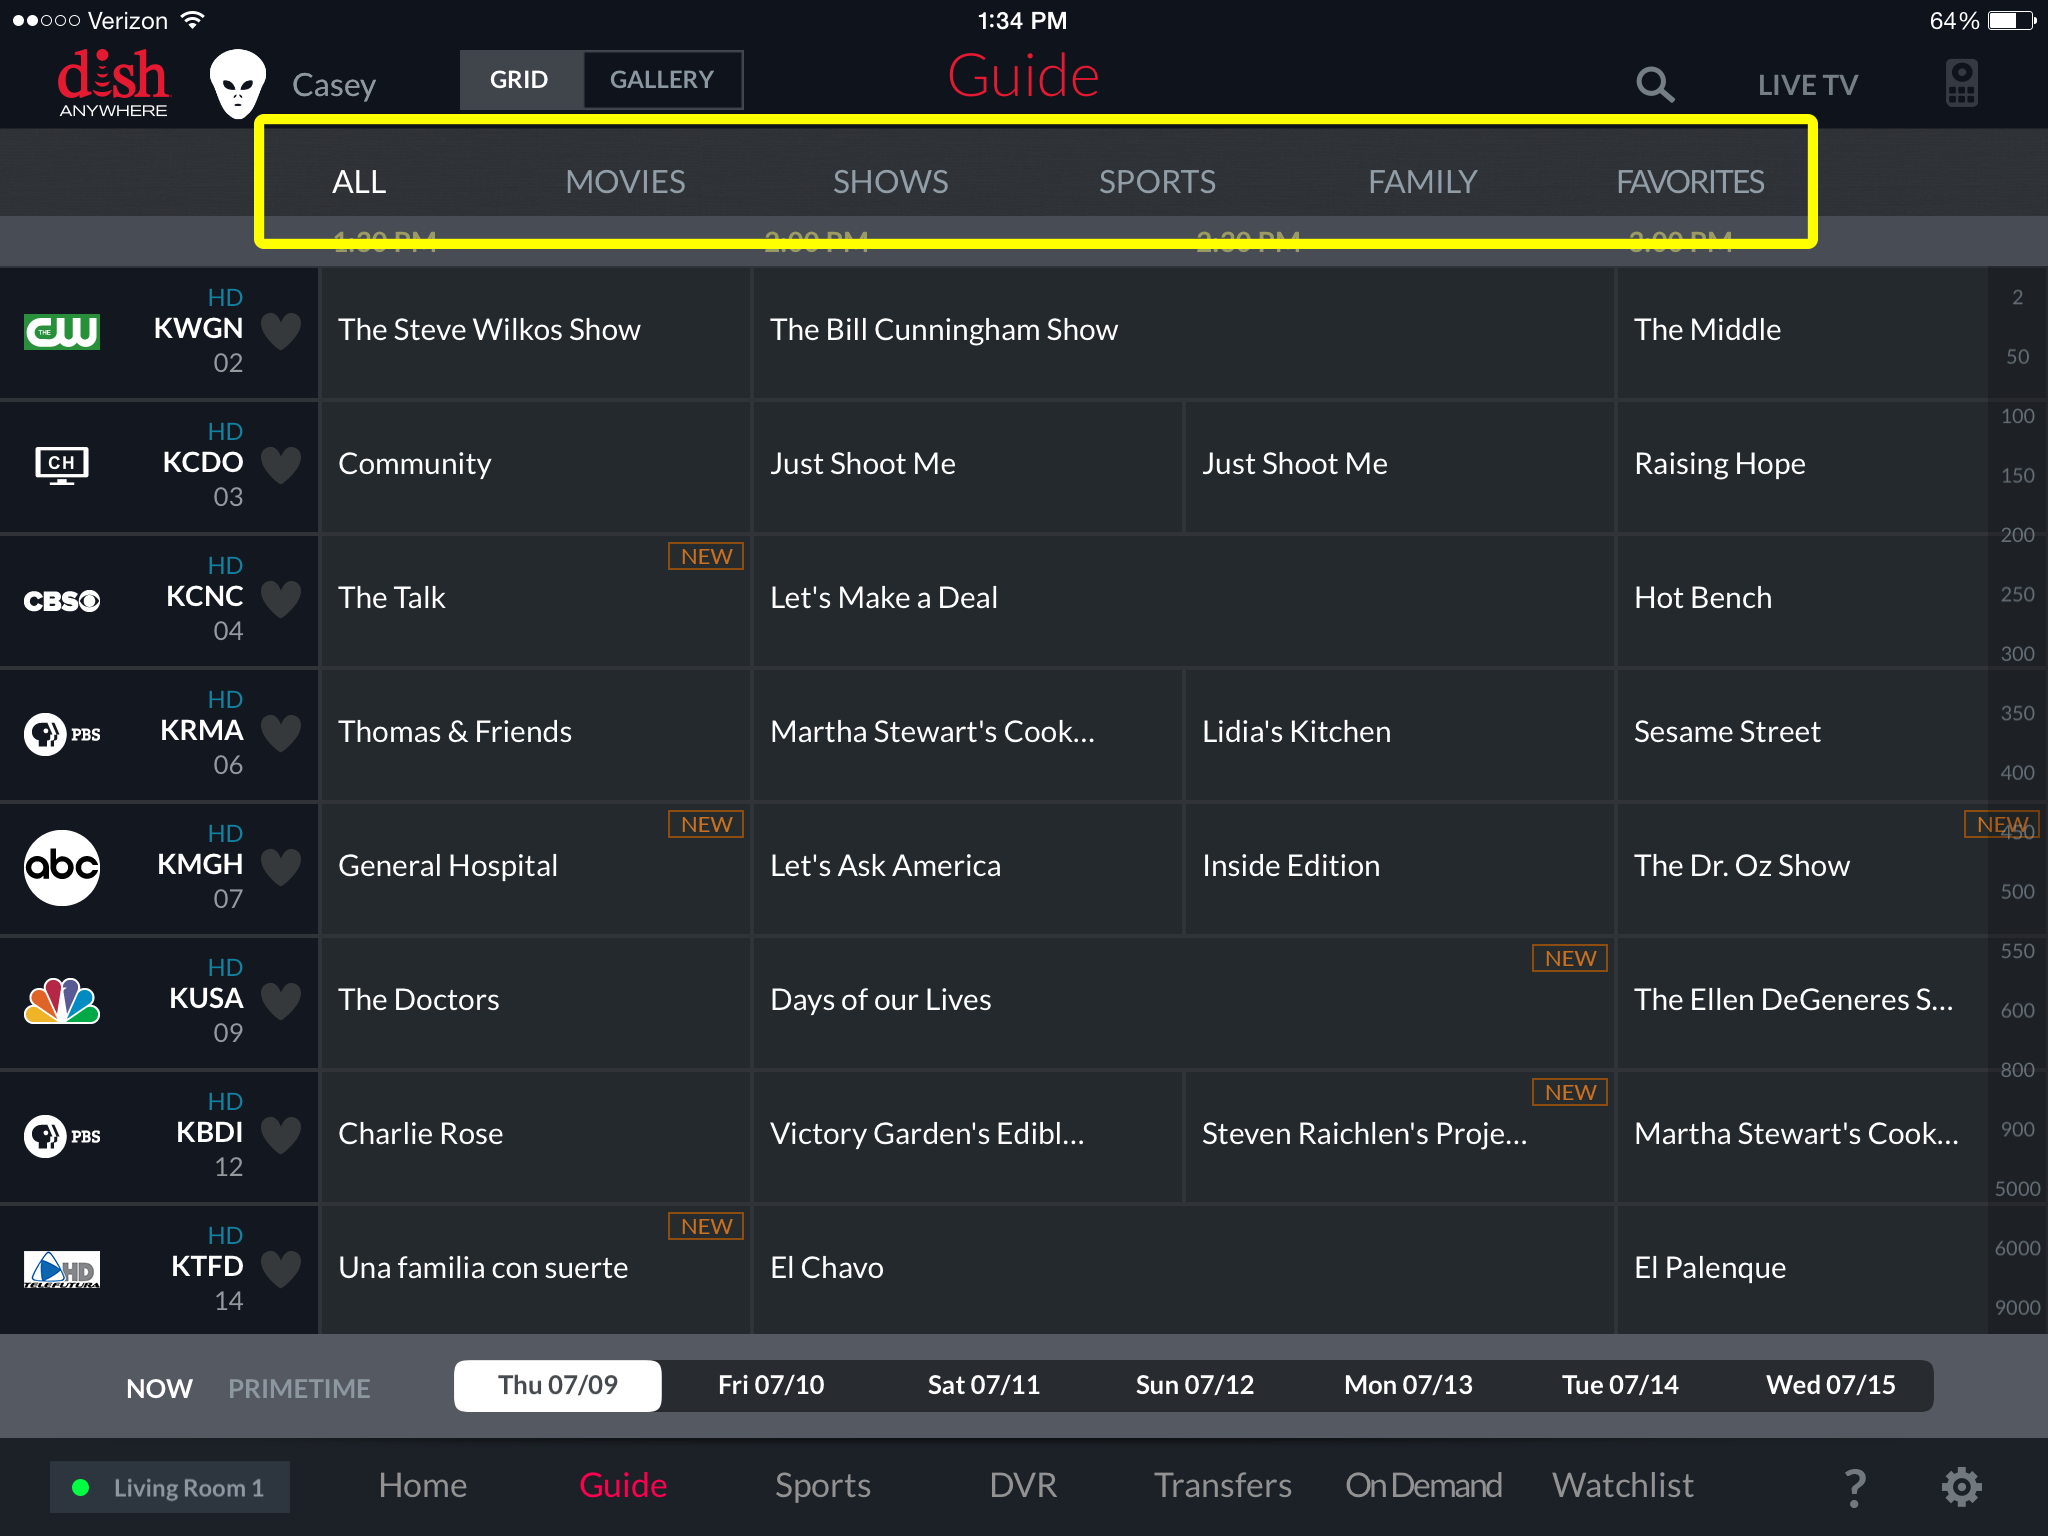 tabs for available categories above the guide, including Movies, Shows, Sports, Family, and Favorites